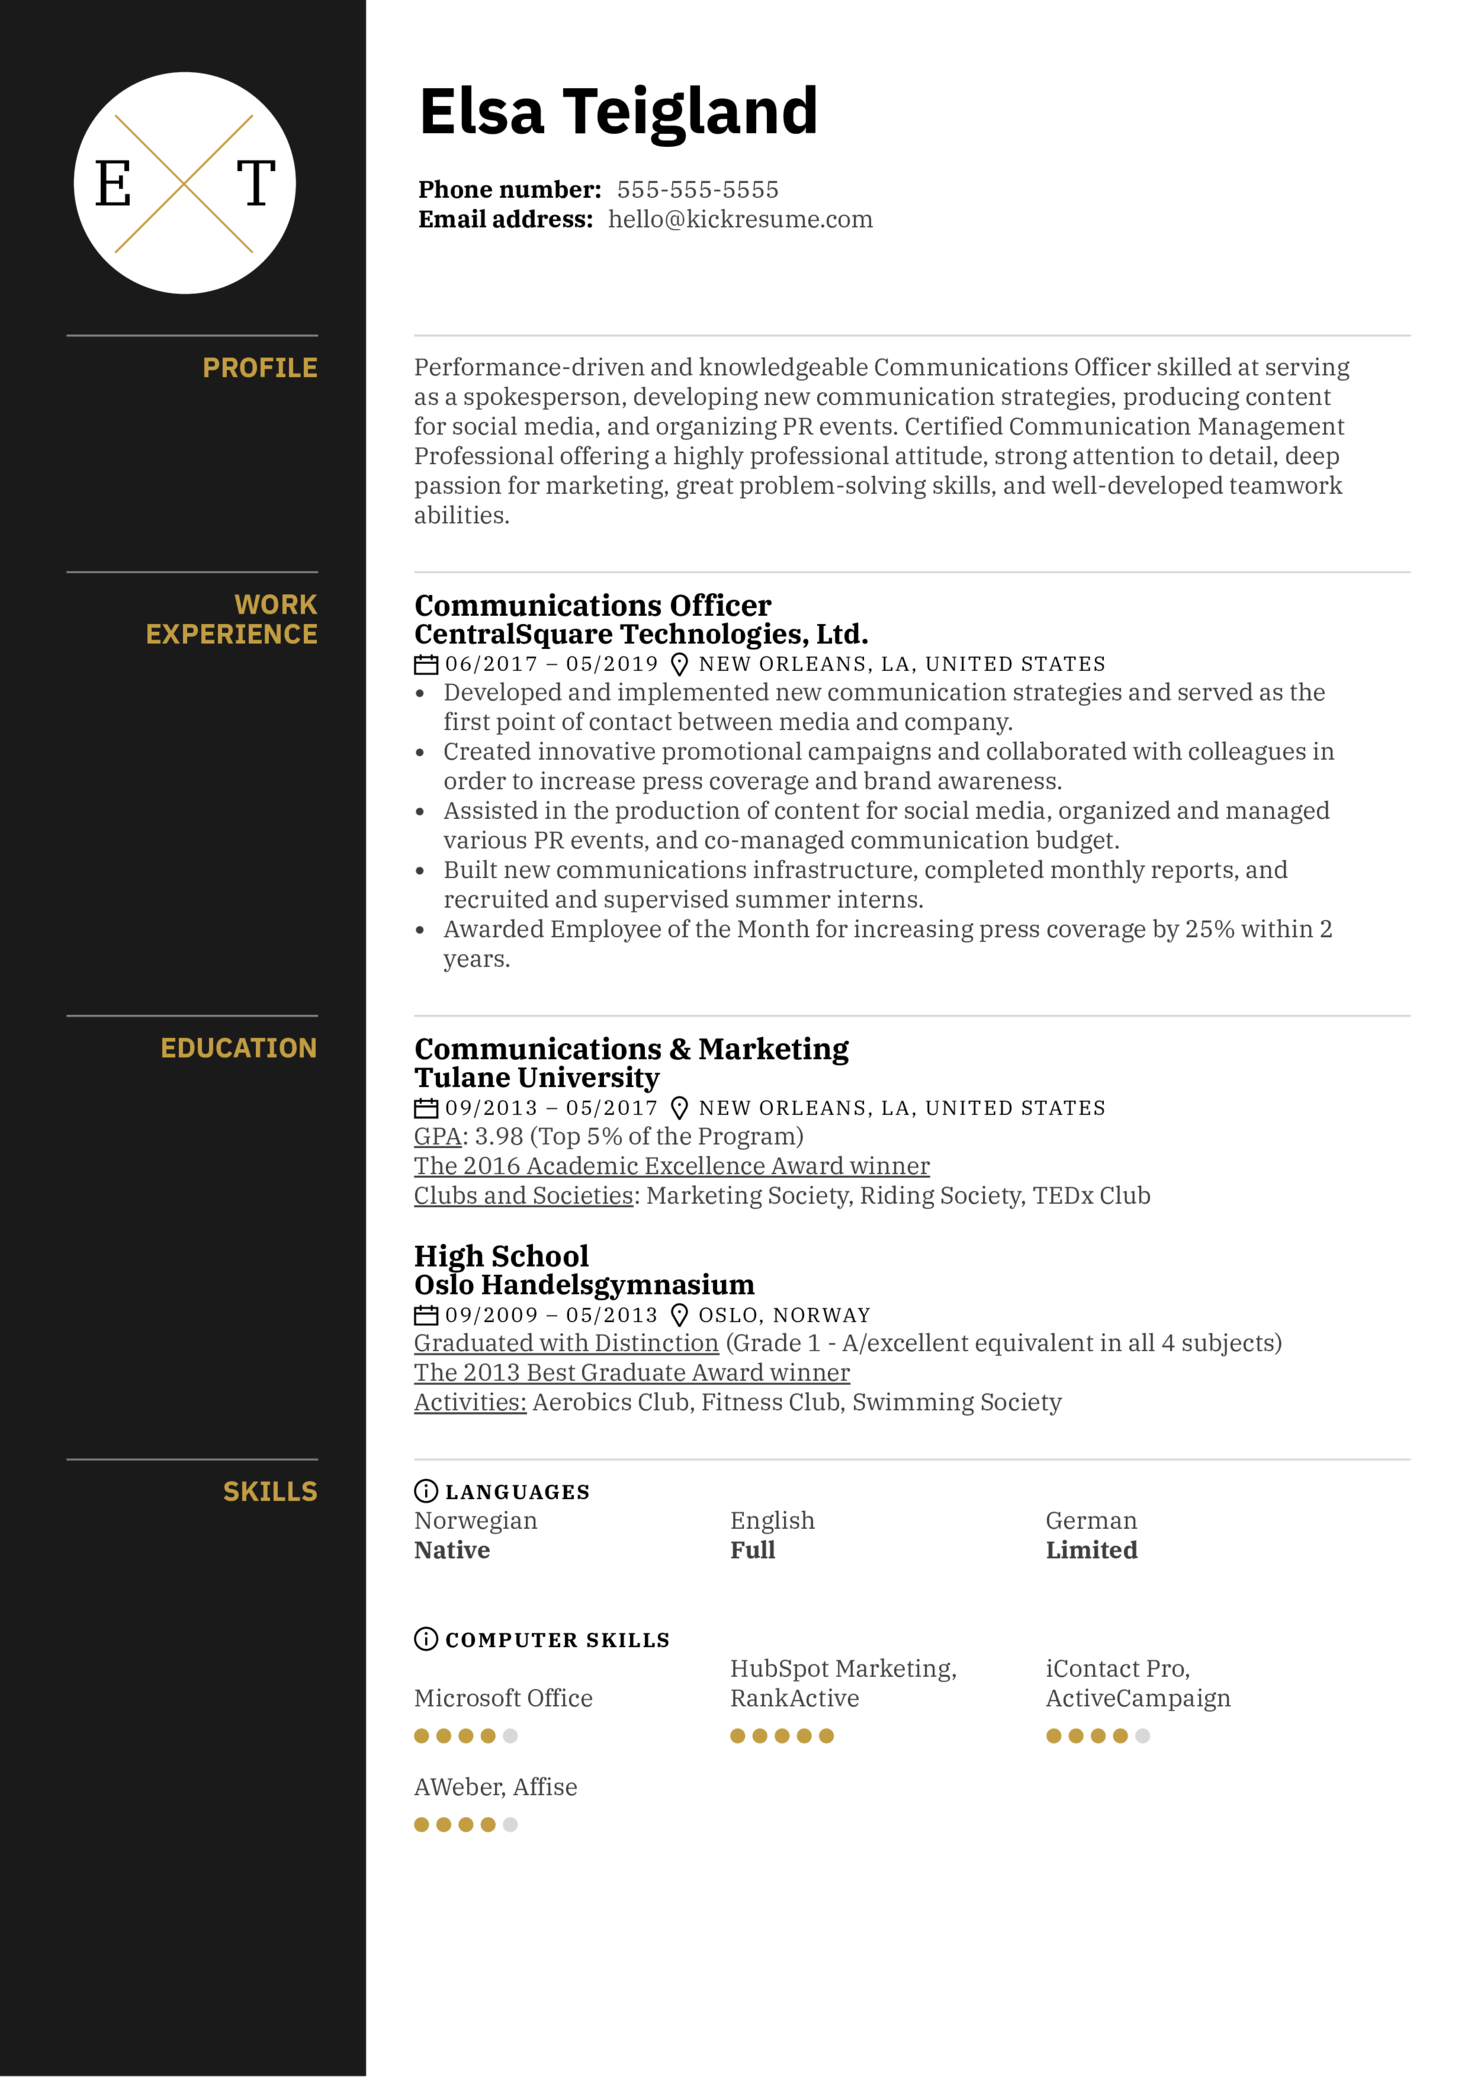 Communications Officer Resume Example (Parte 1)